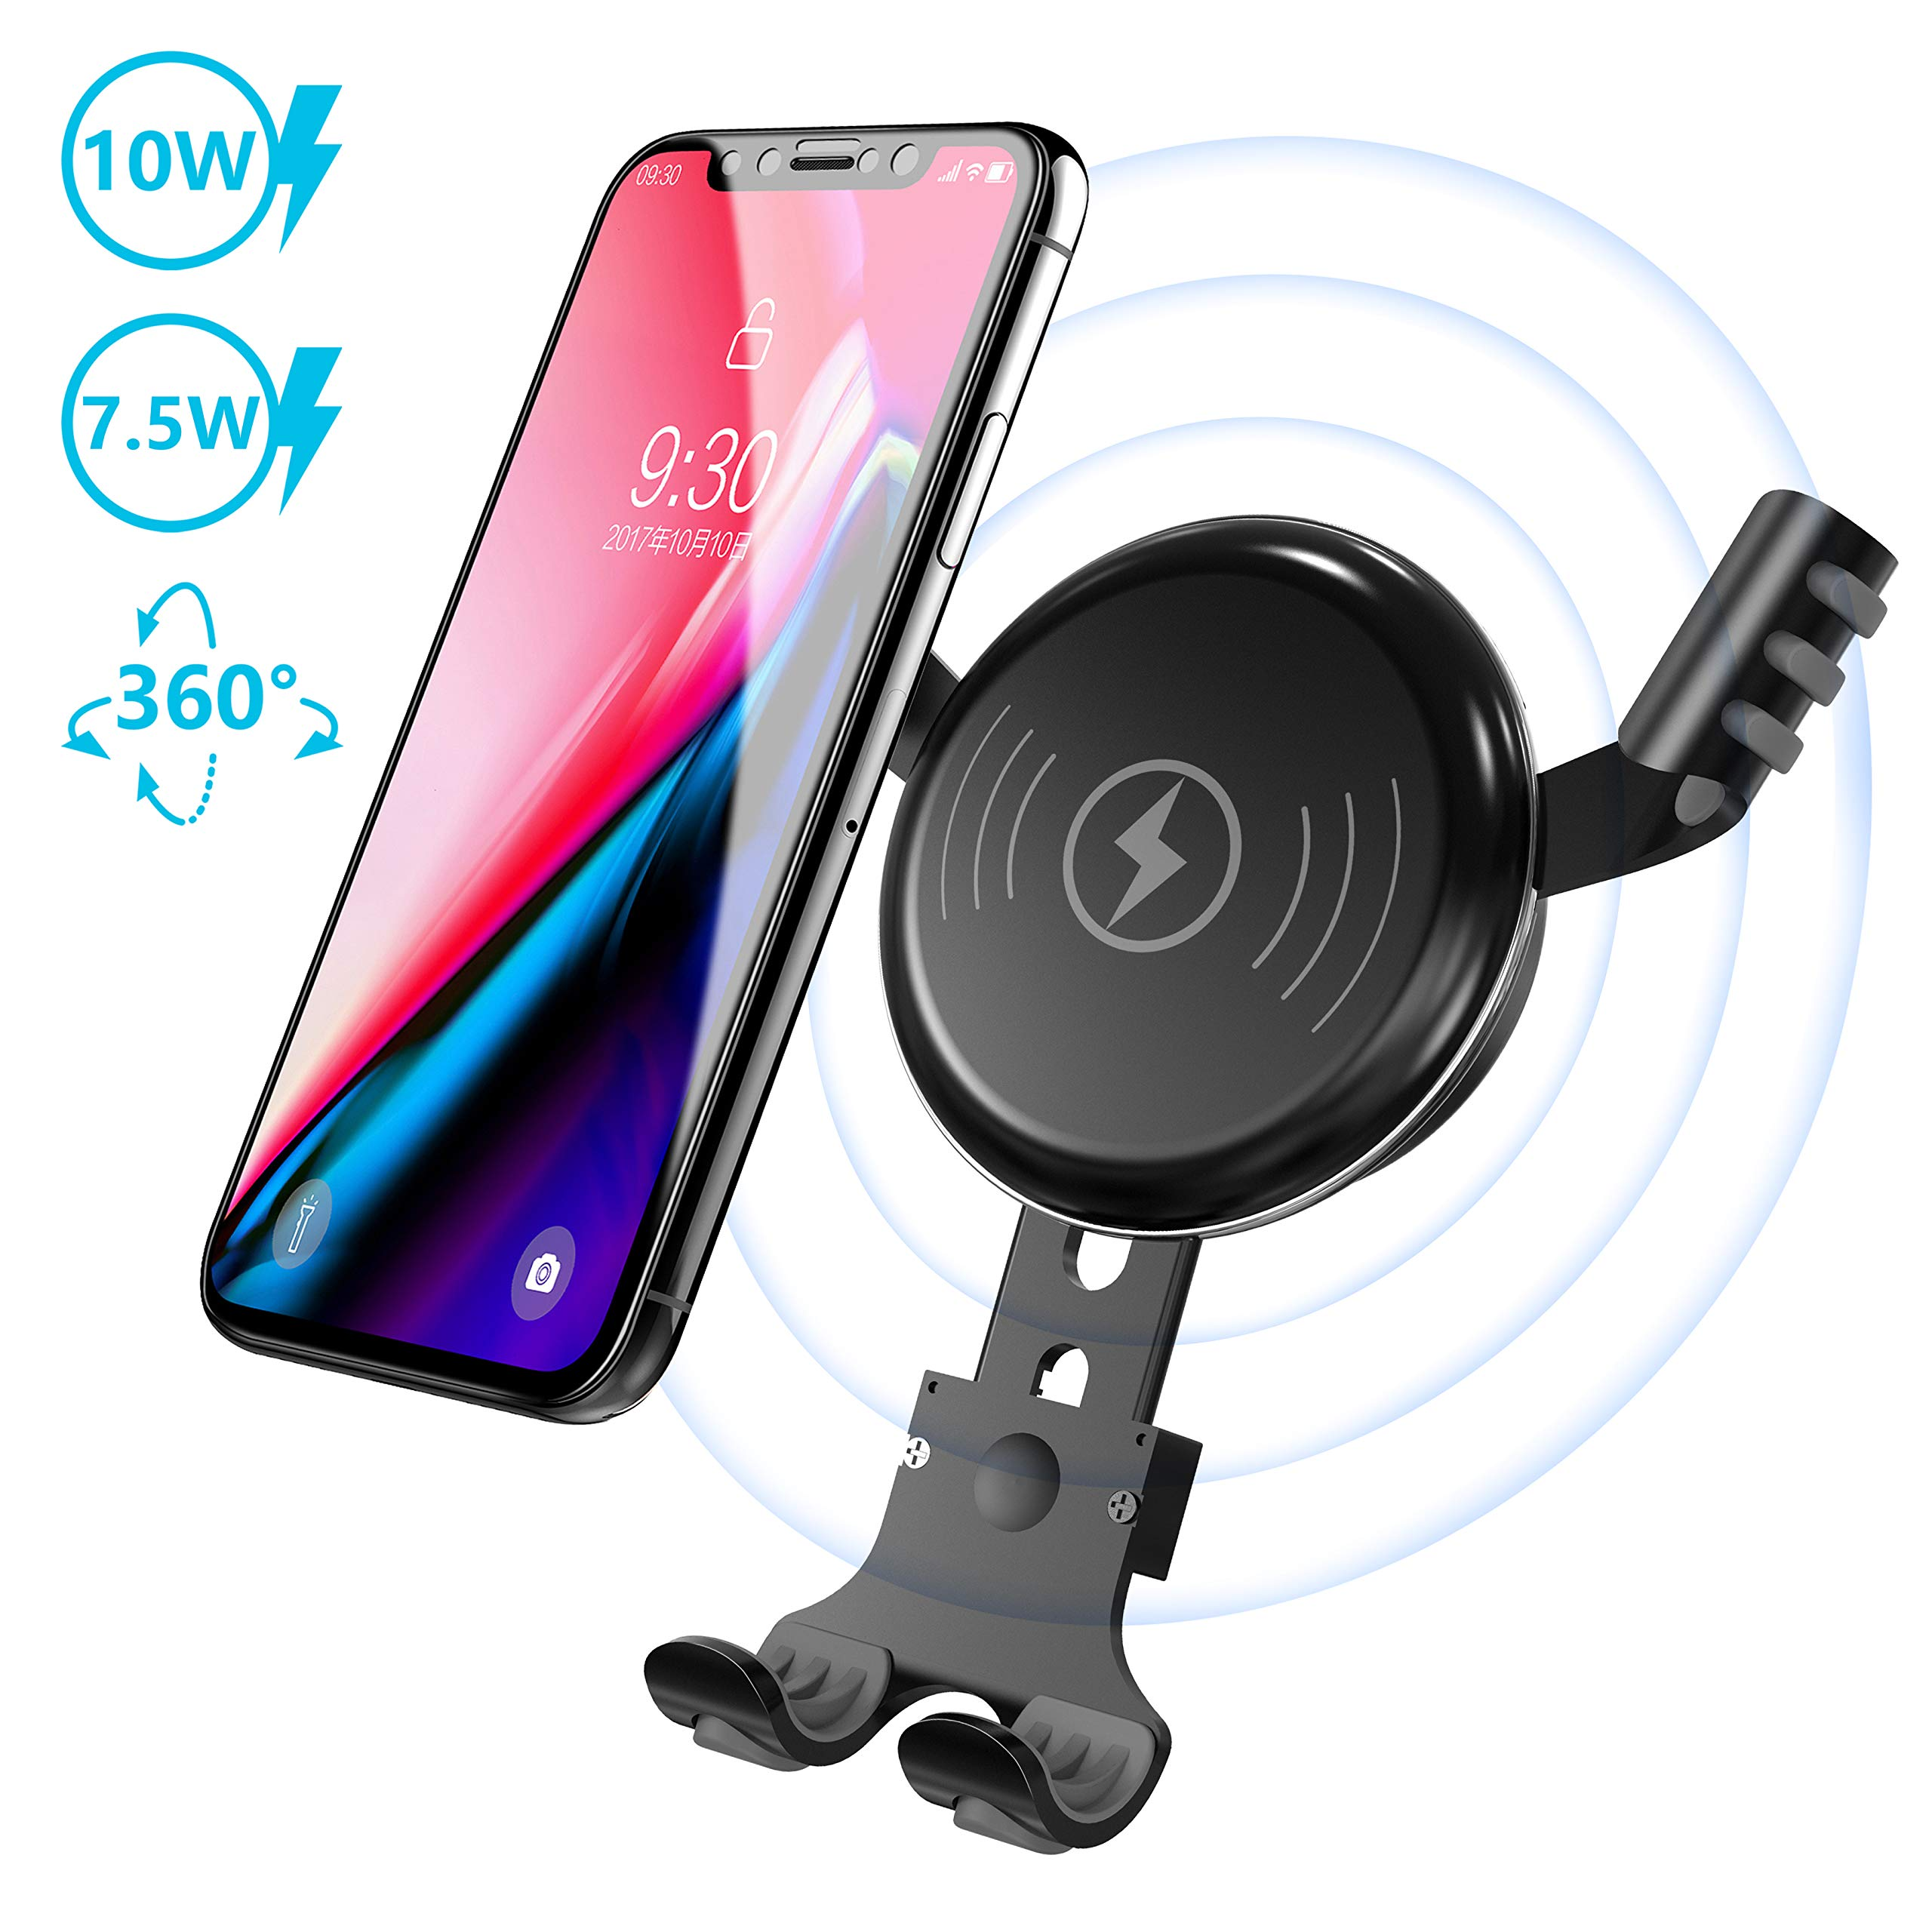 BESTHING Wireless Charger, Wireless Car Mount, Air Vent Phone Holder, 10W Fast Charge Compatible for Samsung Galaxy S9, S8, Note 8, 7.5W Quick Charging Compatible for iPhone Xs (Black)